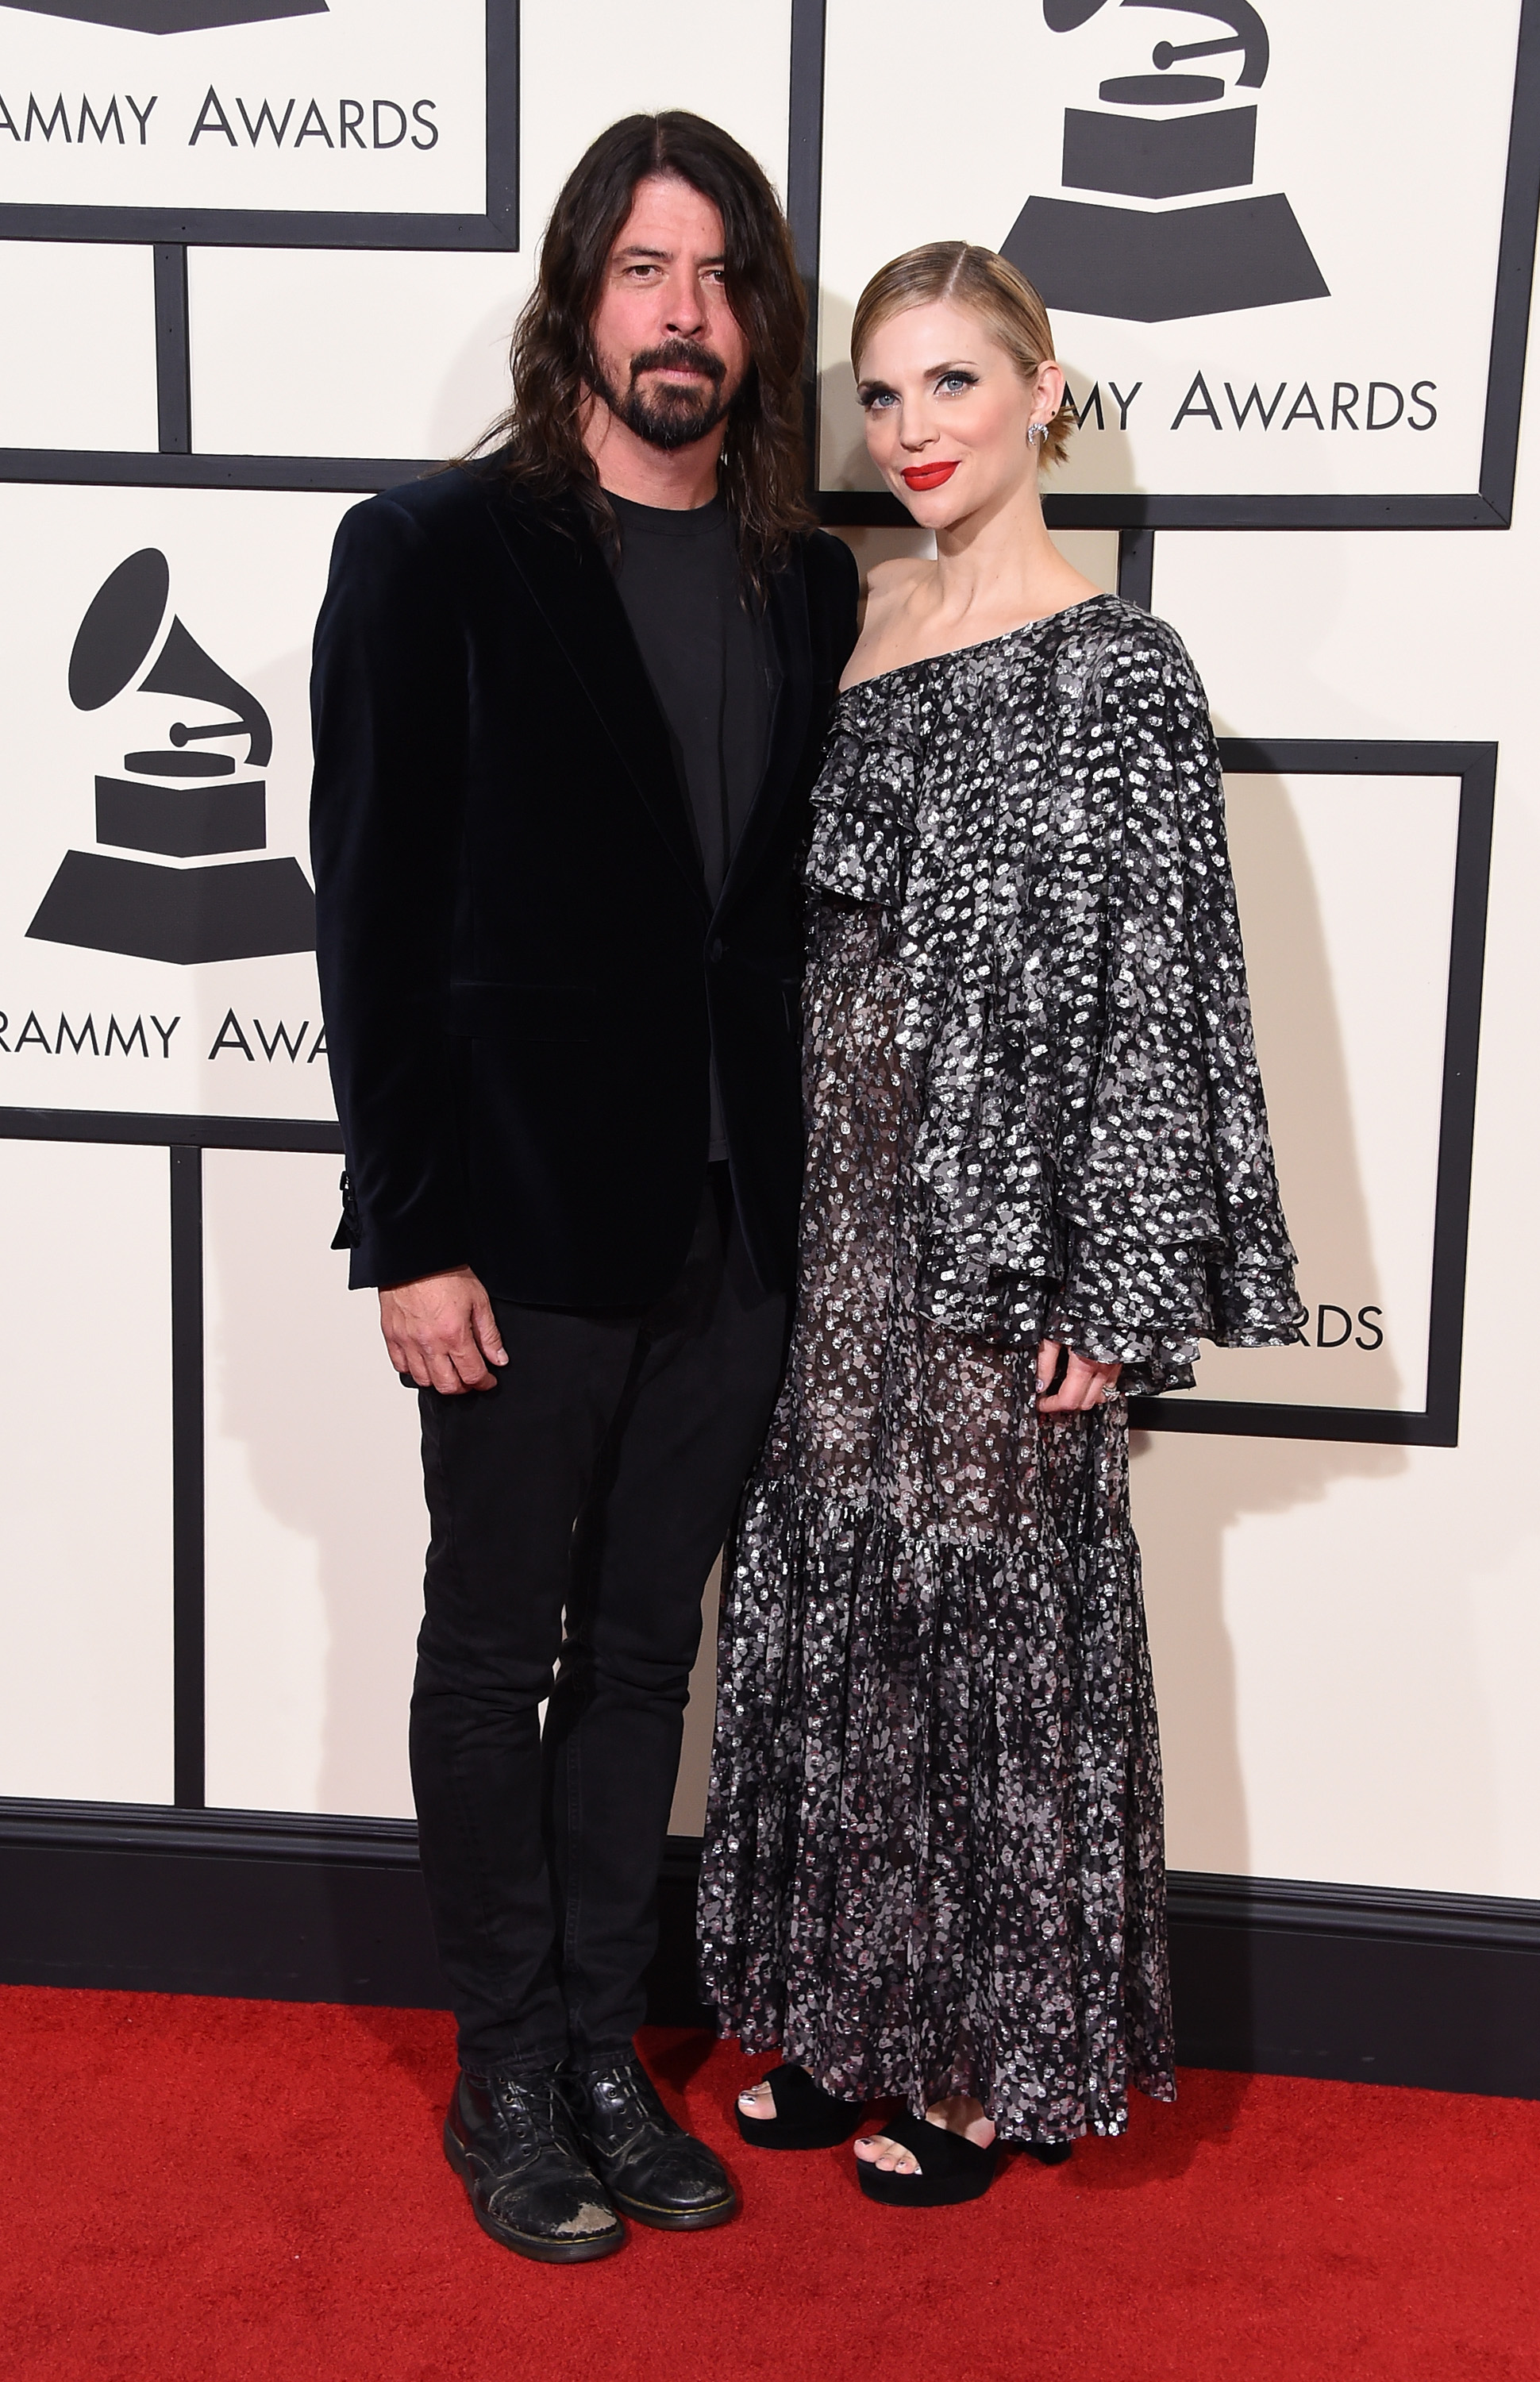 Dave Grohl, left, and Jordyn Blum, right, attend the 58th GRAMMY Awards at Staples Center on Feb. 15, 2016 in Los Angeles.